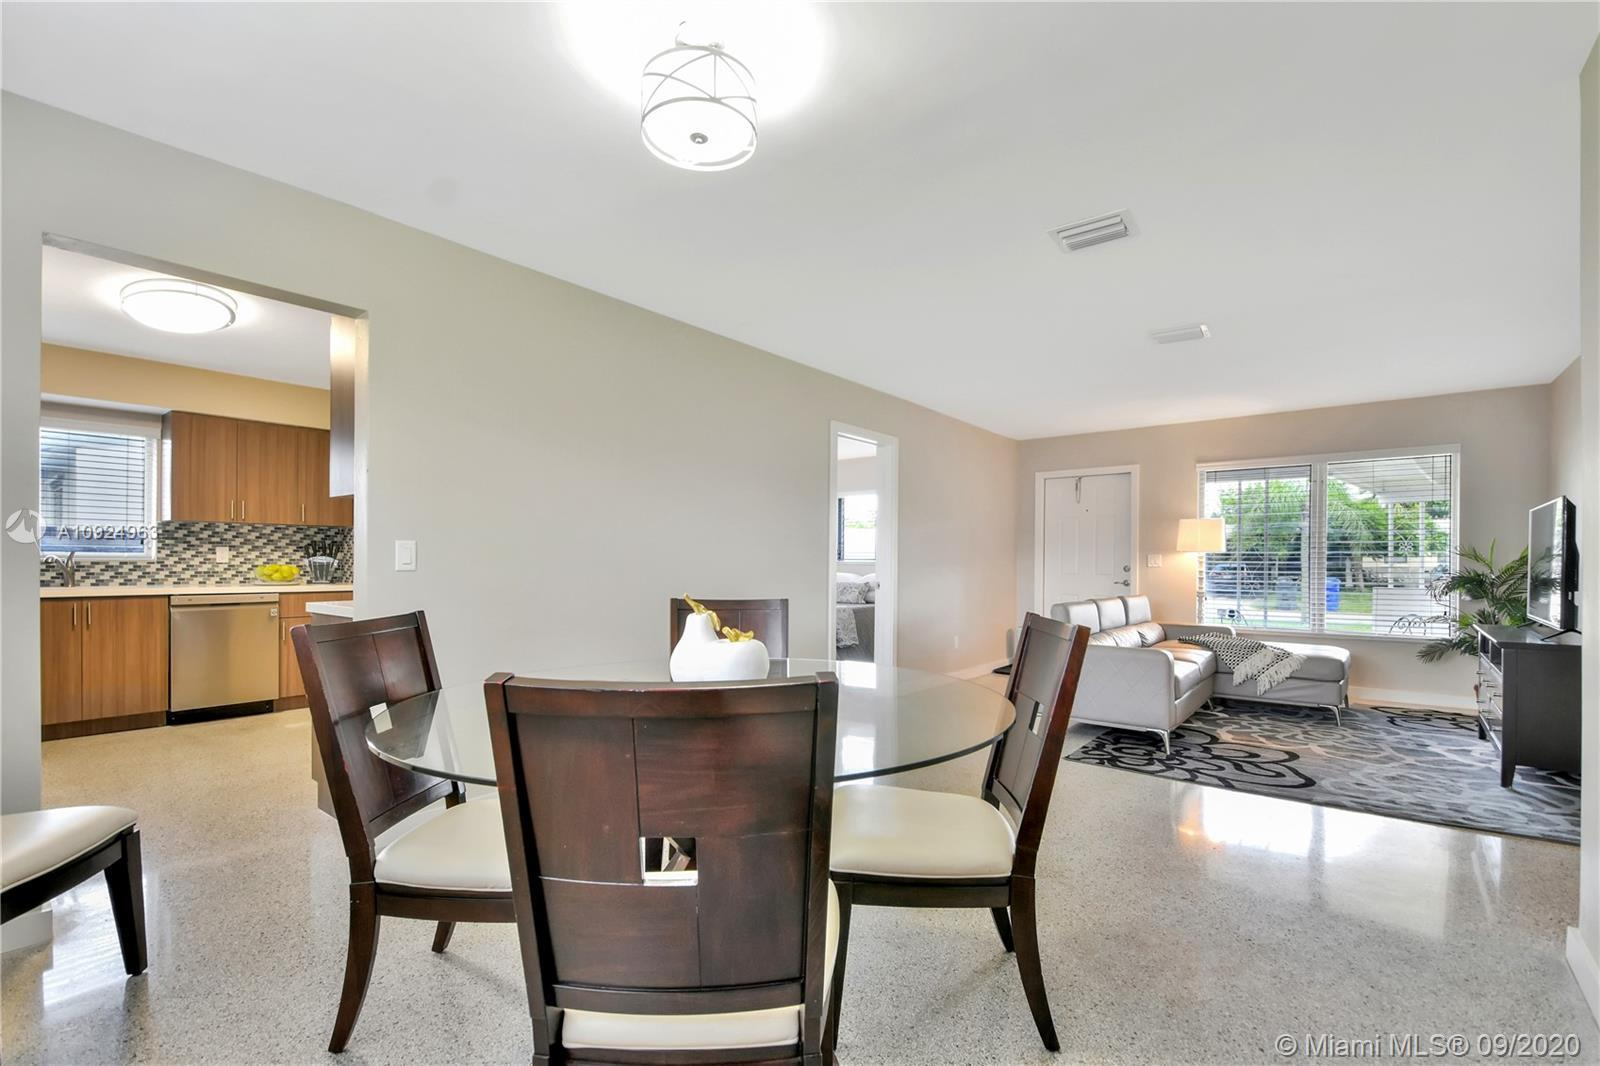 Renovated and spacious 3 bed 2 bath home with great layout for your family. Located in peaceful Holl